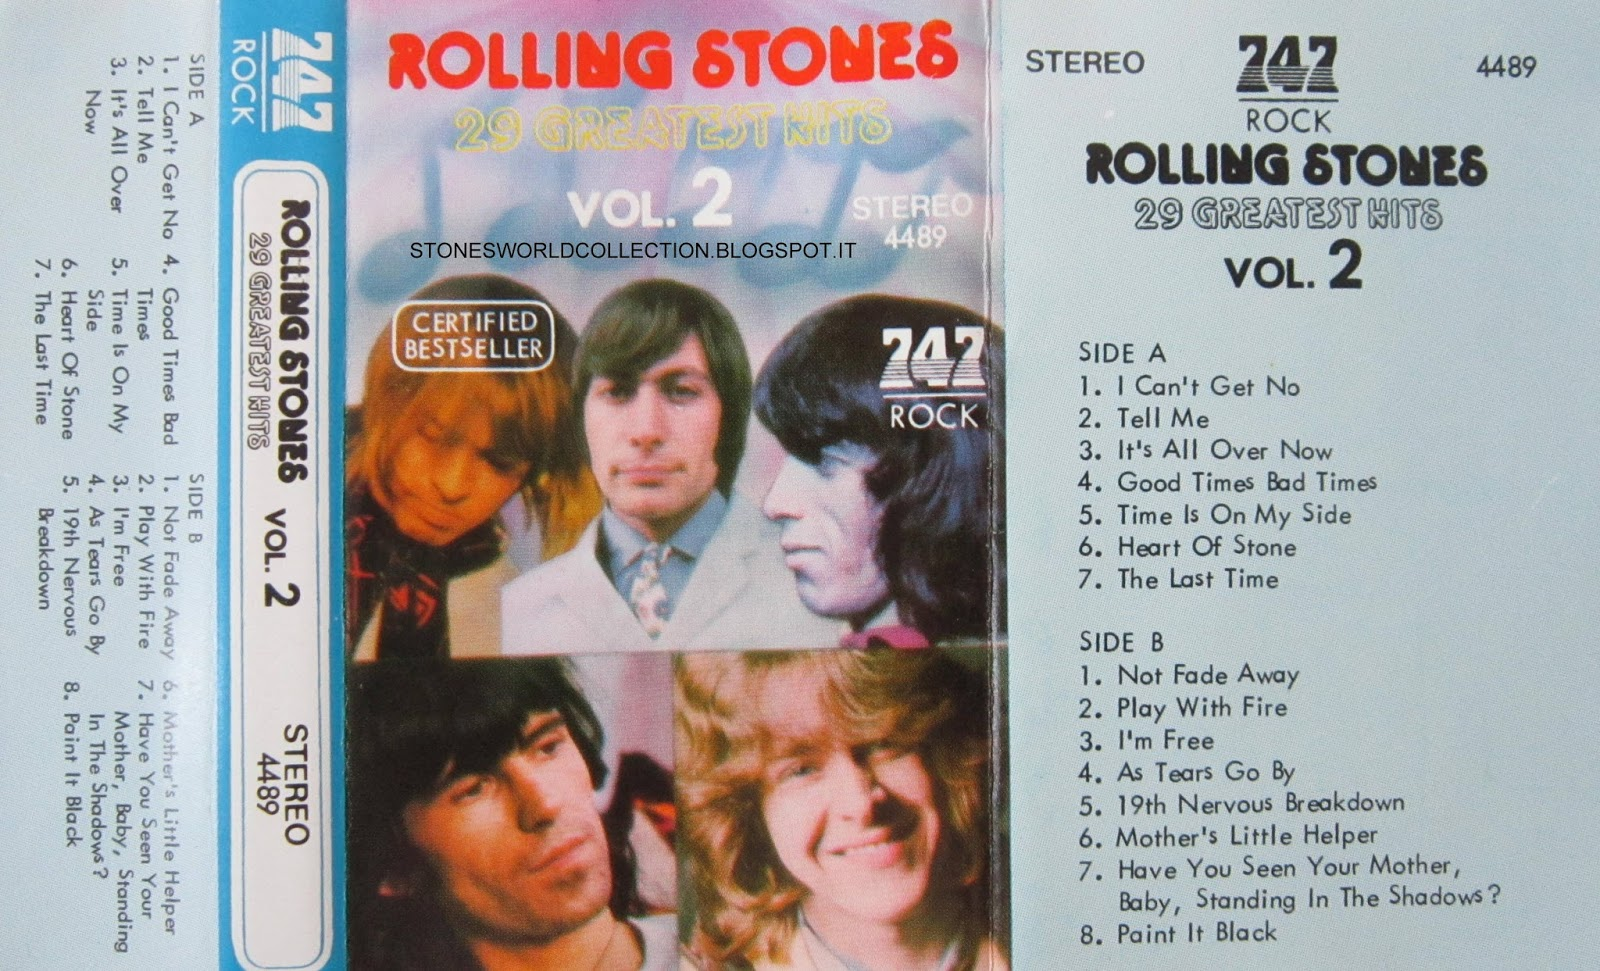 Stonesworldcollection Rolling Stones 29 Greatest Hits